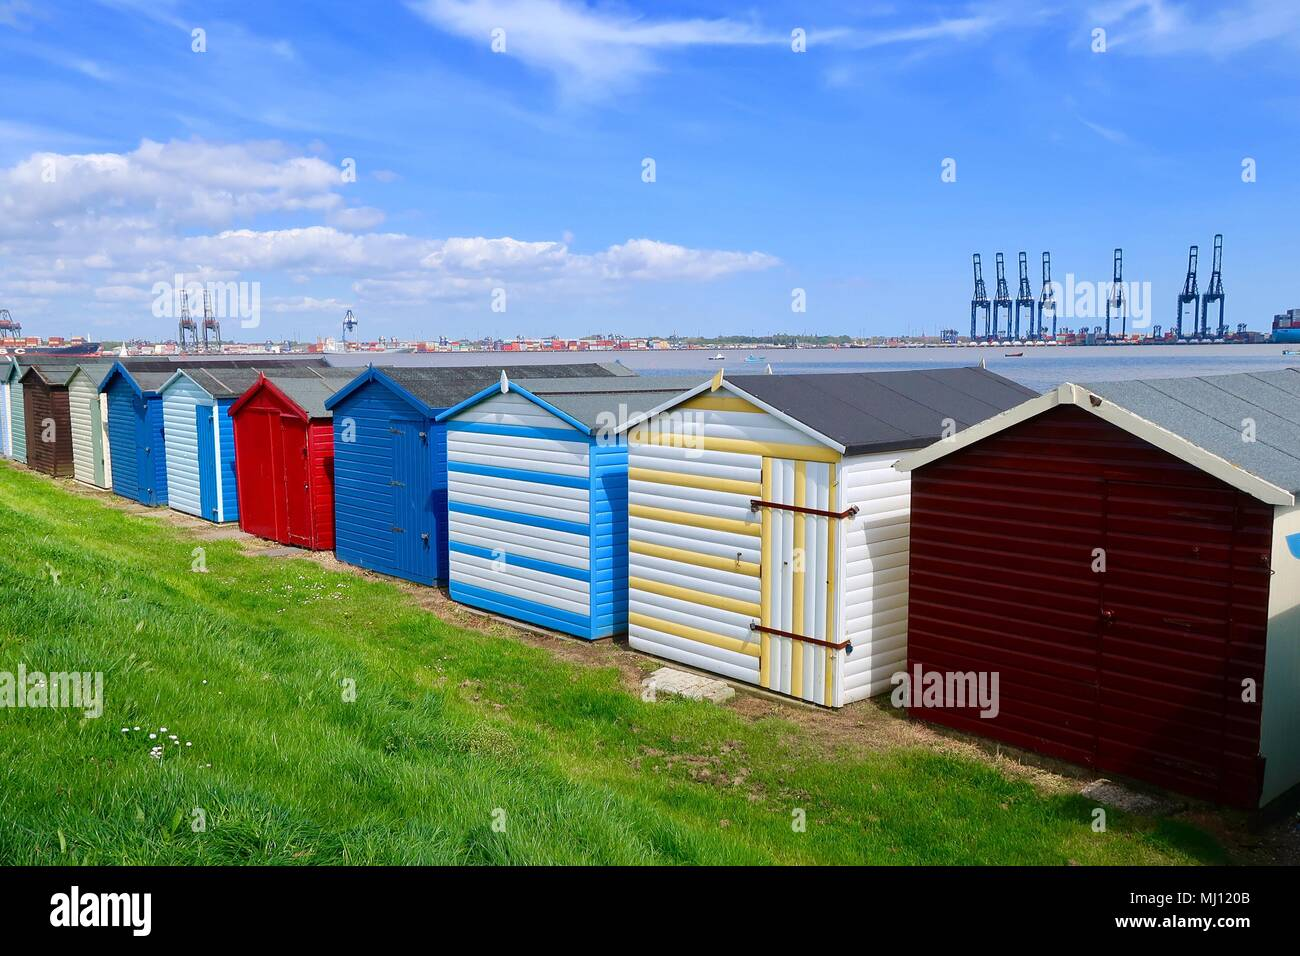 Colourful beach huts on the harbour wall at Harwich, Essex. Bright sunny day. May 2018. Port of Felixstowe cranes visible in the background. - Stock Image